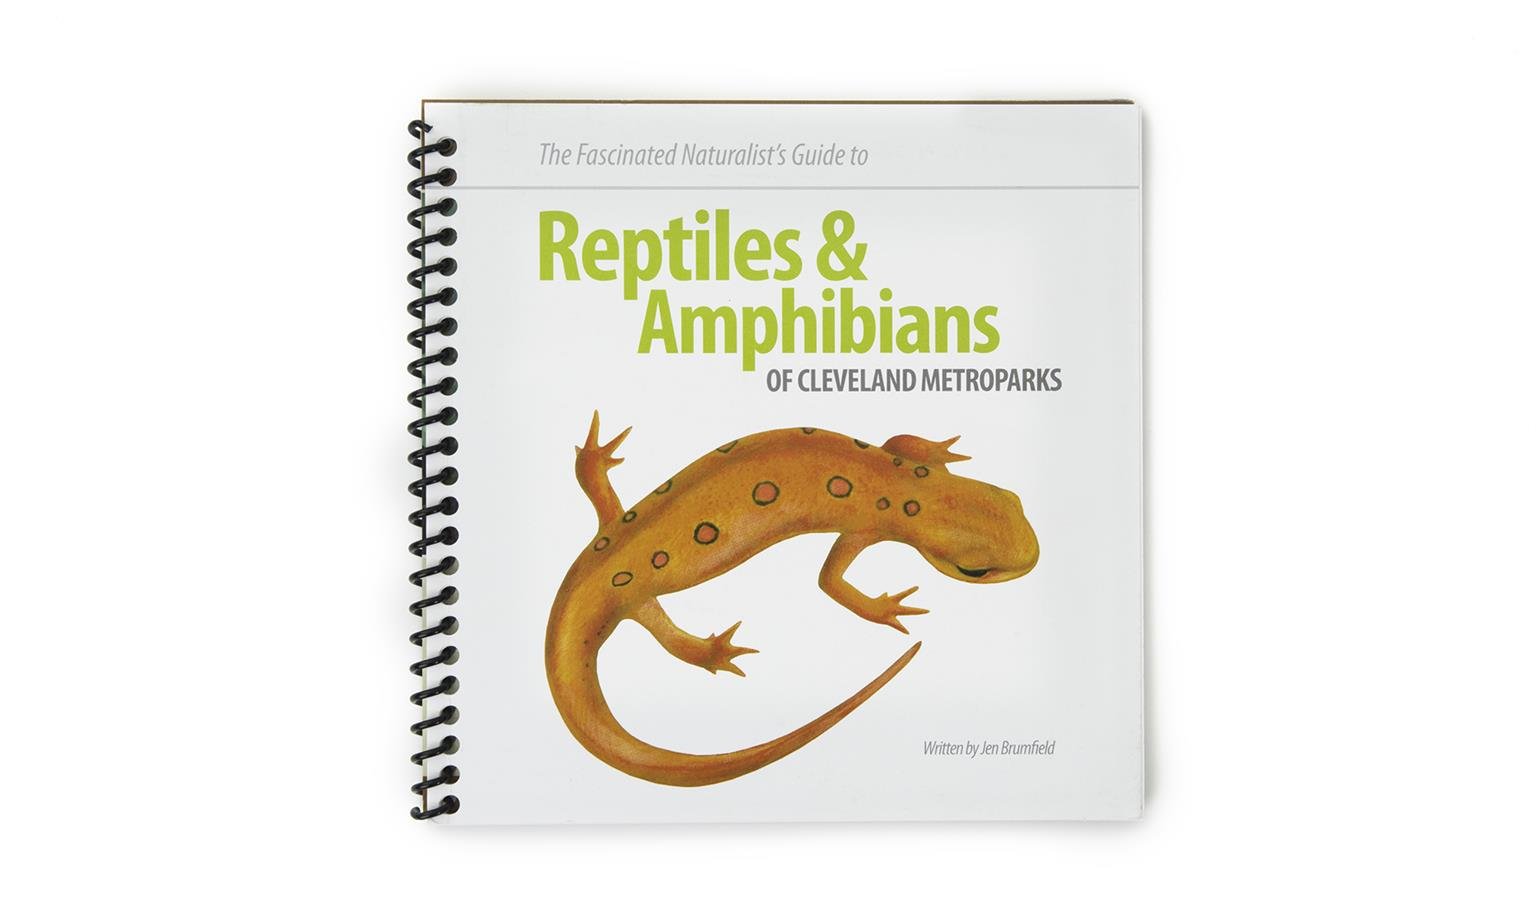 Reptiles & Amphibians of Cleveland Metroparks